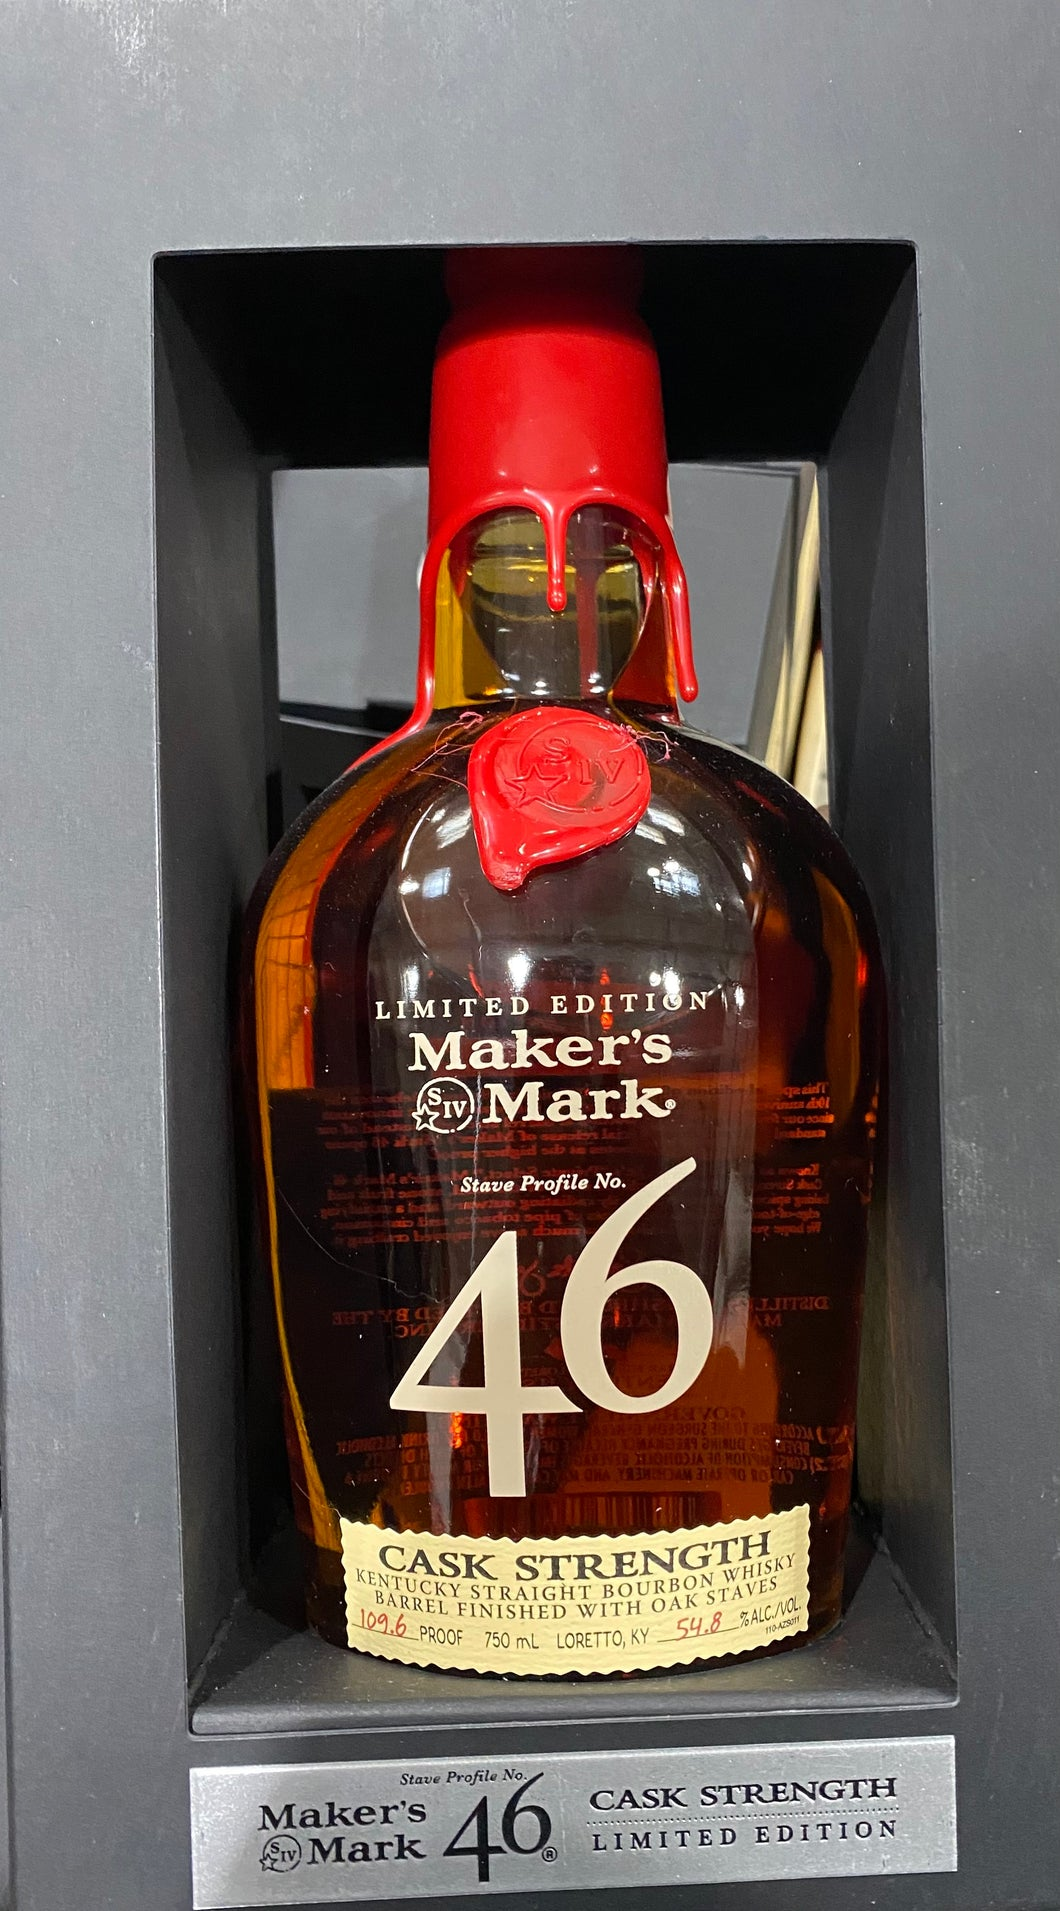 MAKERS MARK 46 CASK STRENGTH LIMITED EDITION 750Ml